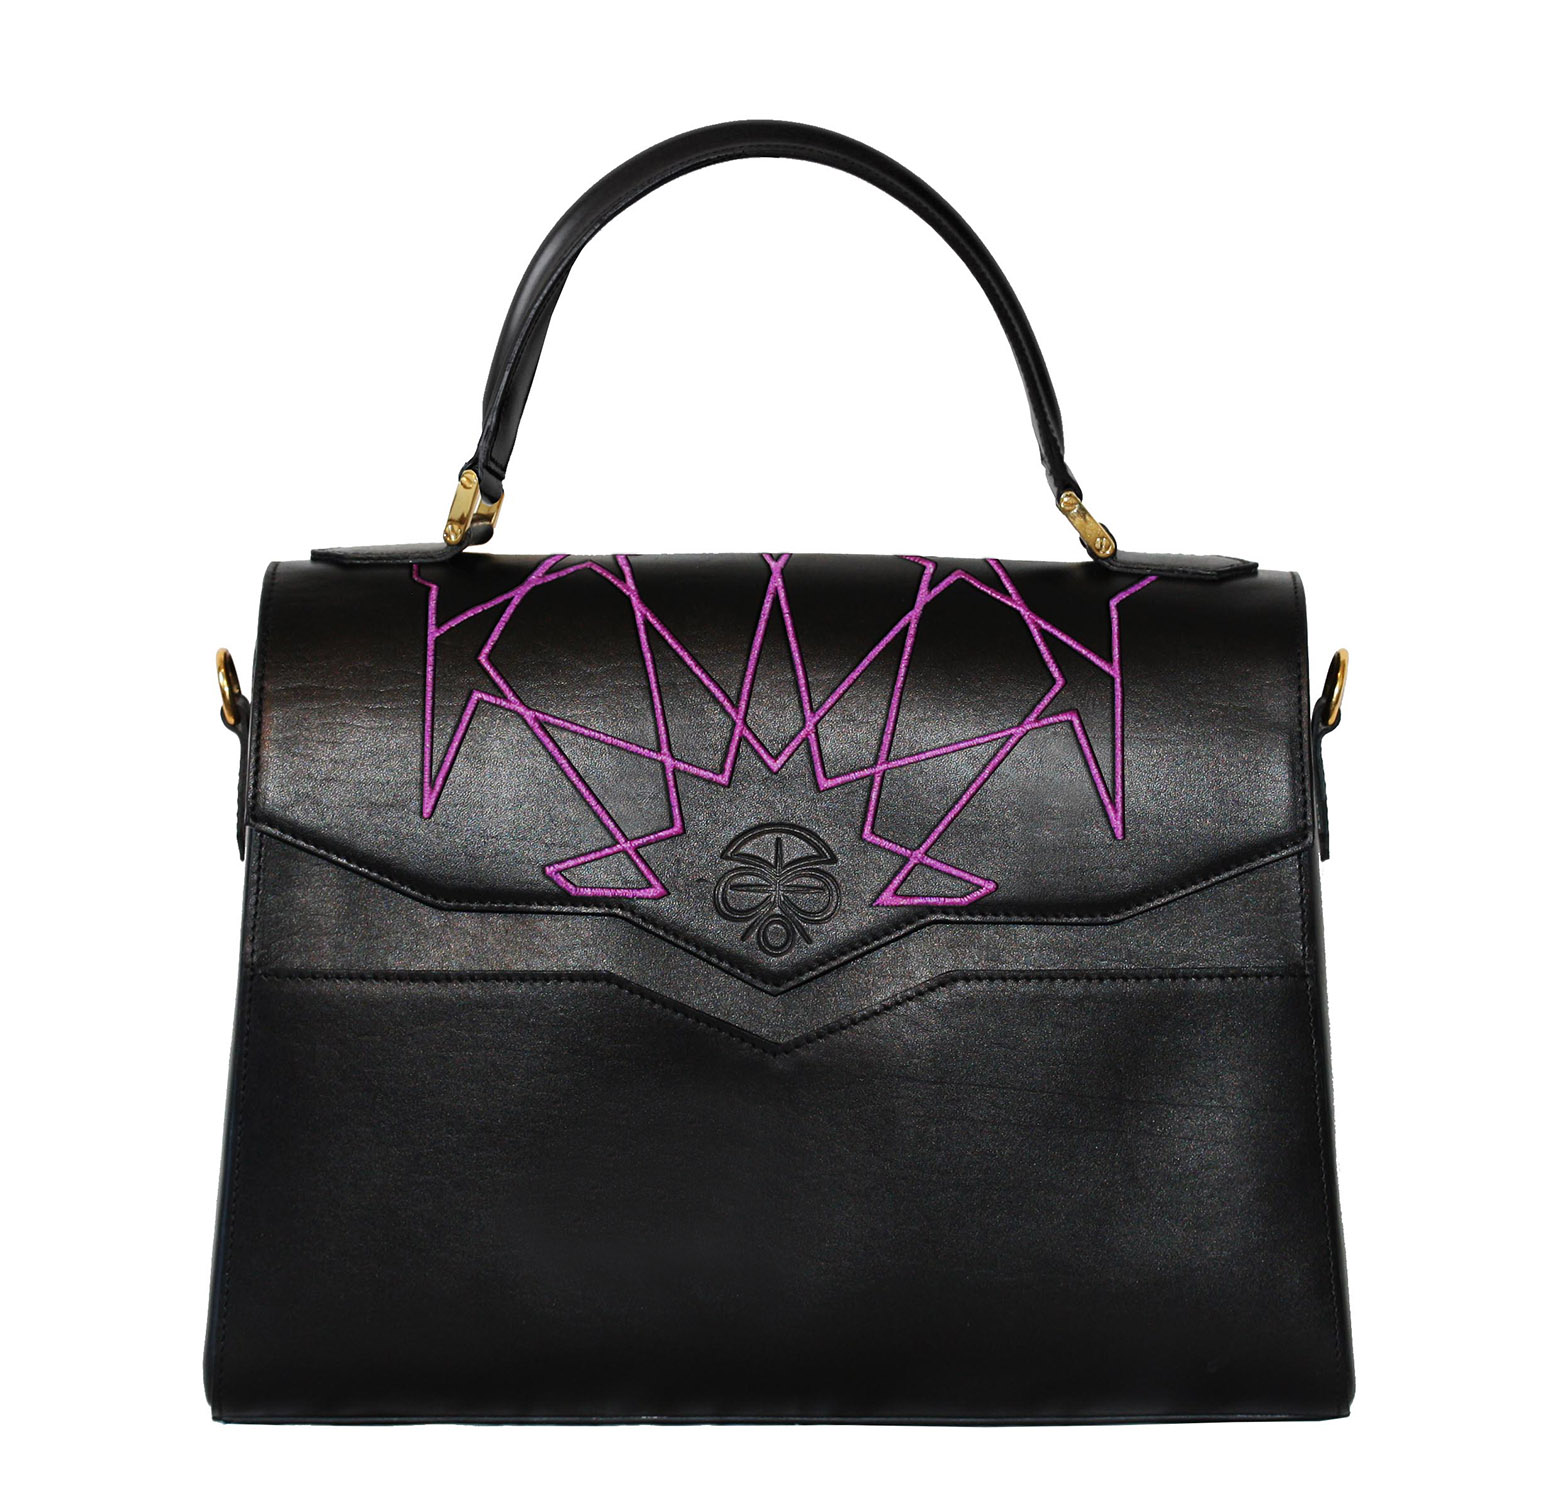 BIANCAC   Purple embroidered